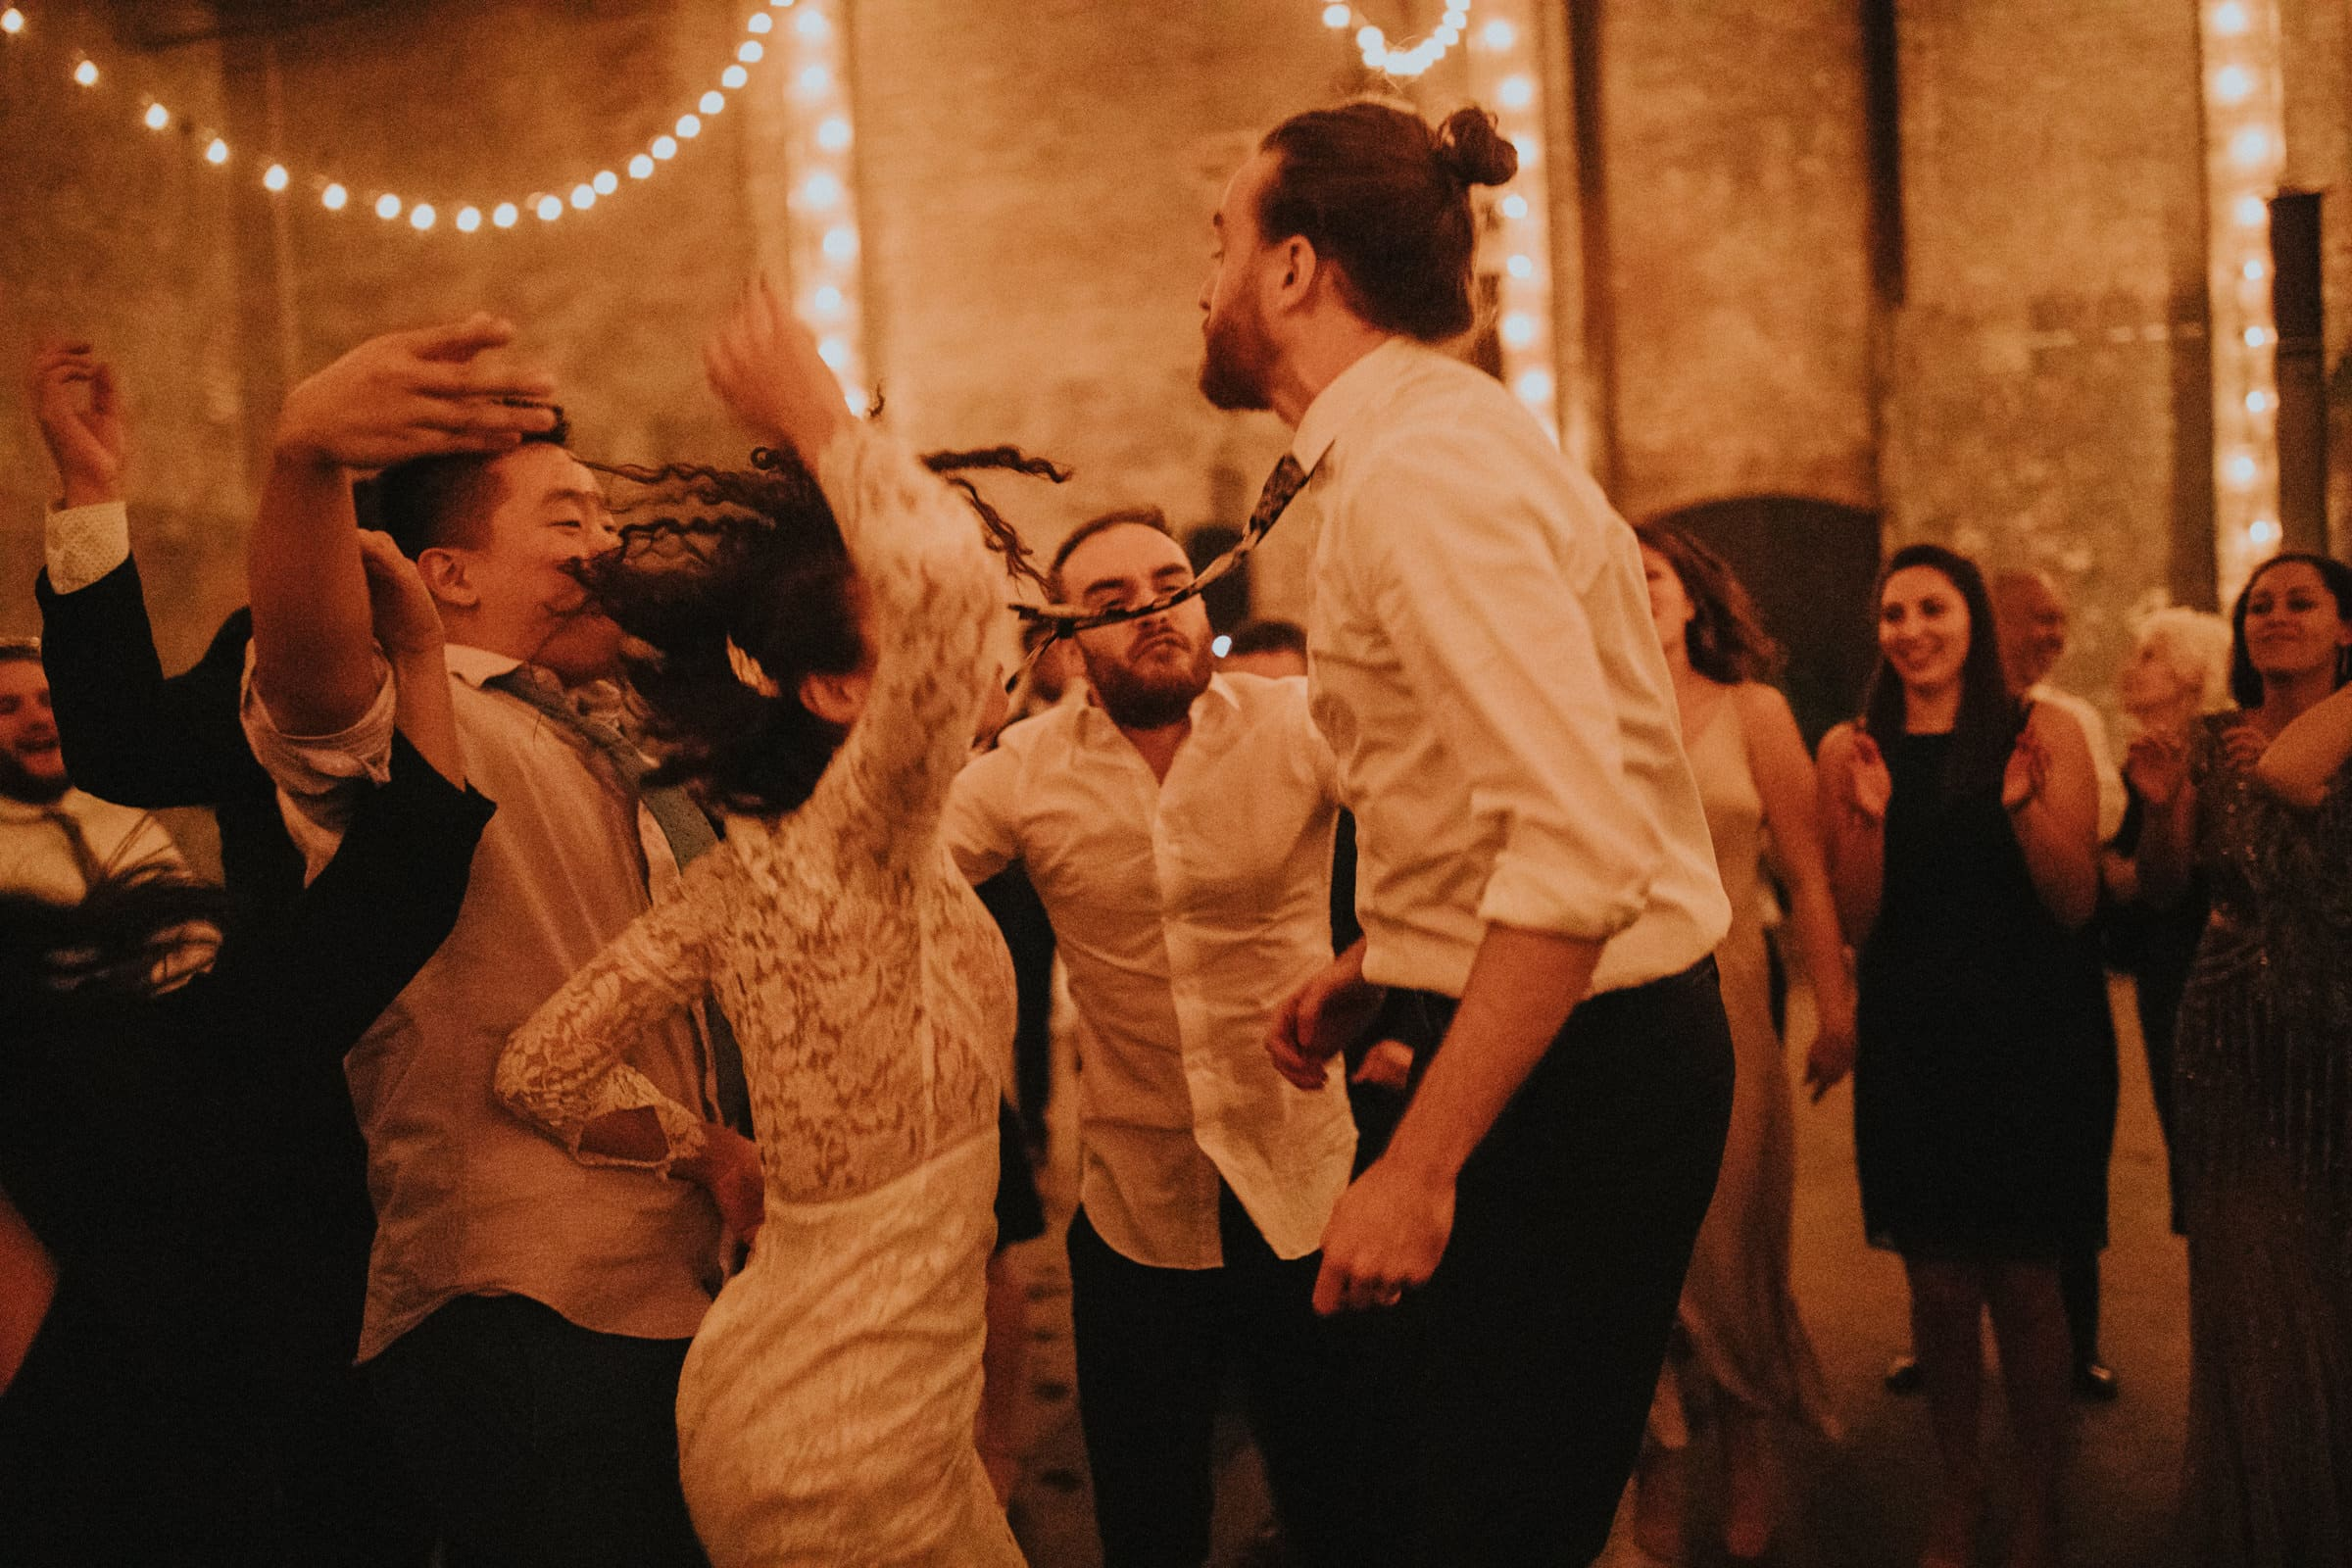 The wedding couple is dancing with their guests at the wedding.